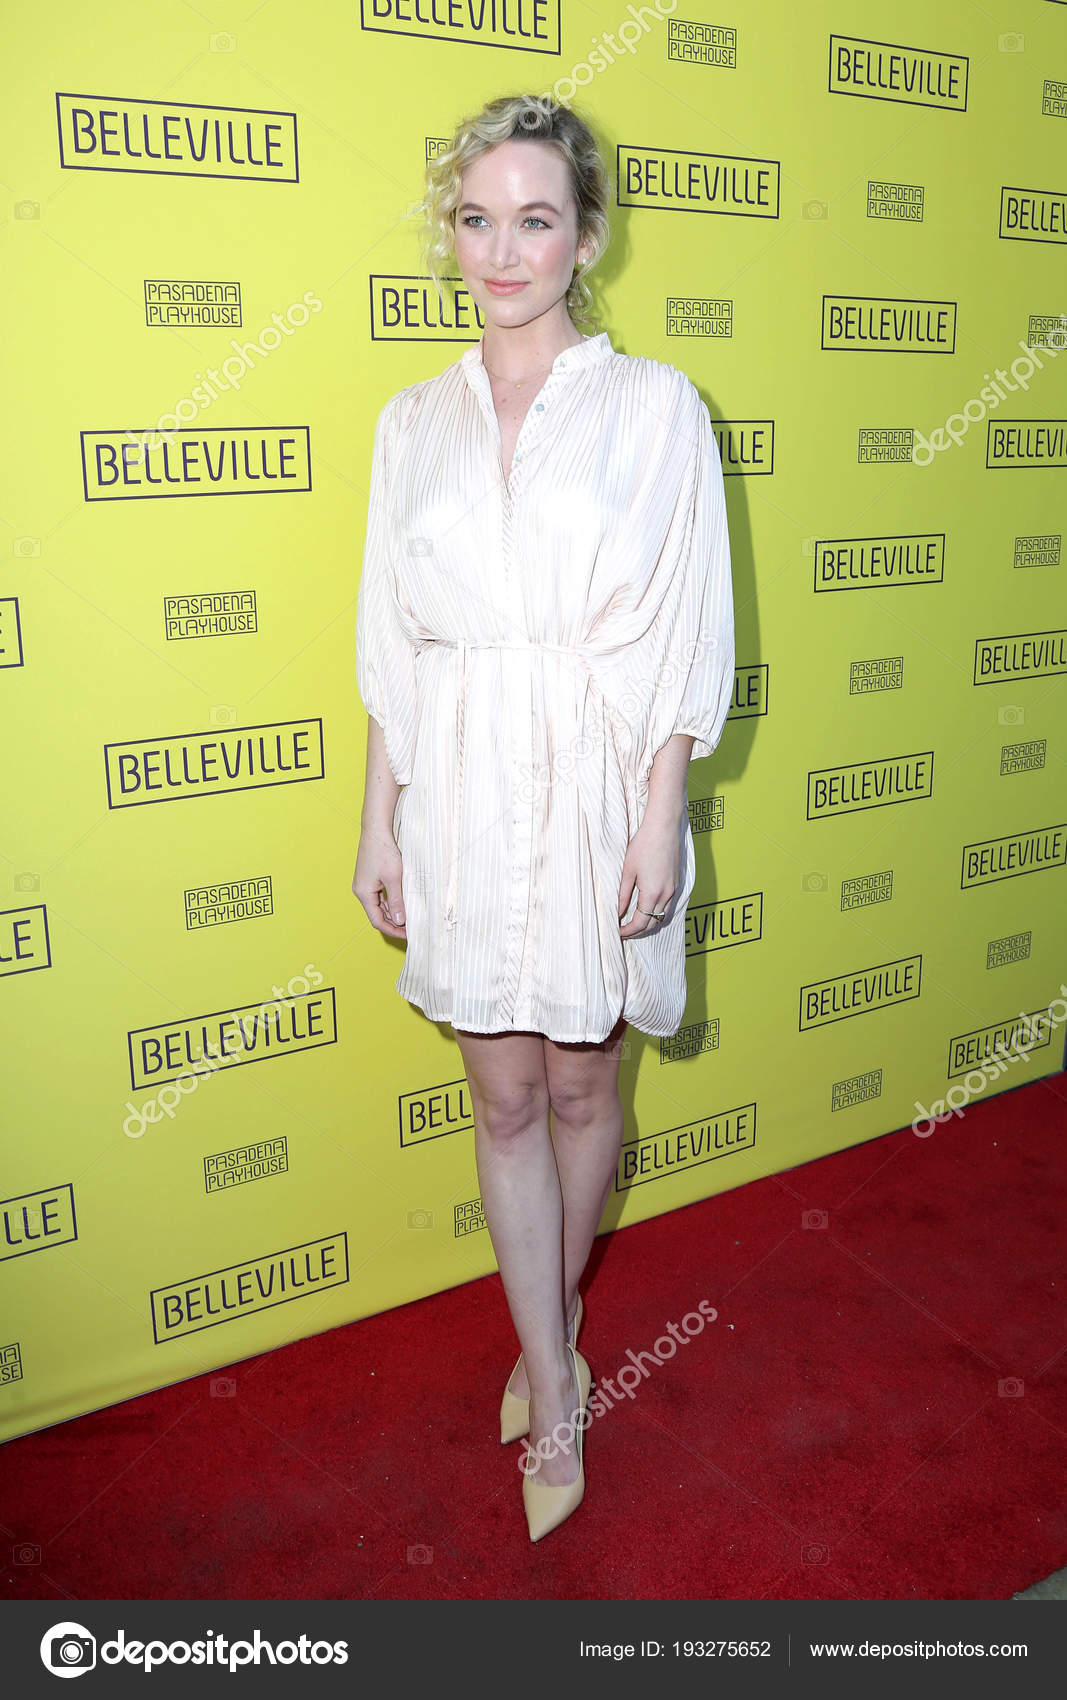 Evelyn Venable,Mackenzie Phillips Porn pic Christine Harris (actress),Chantelle Barry